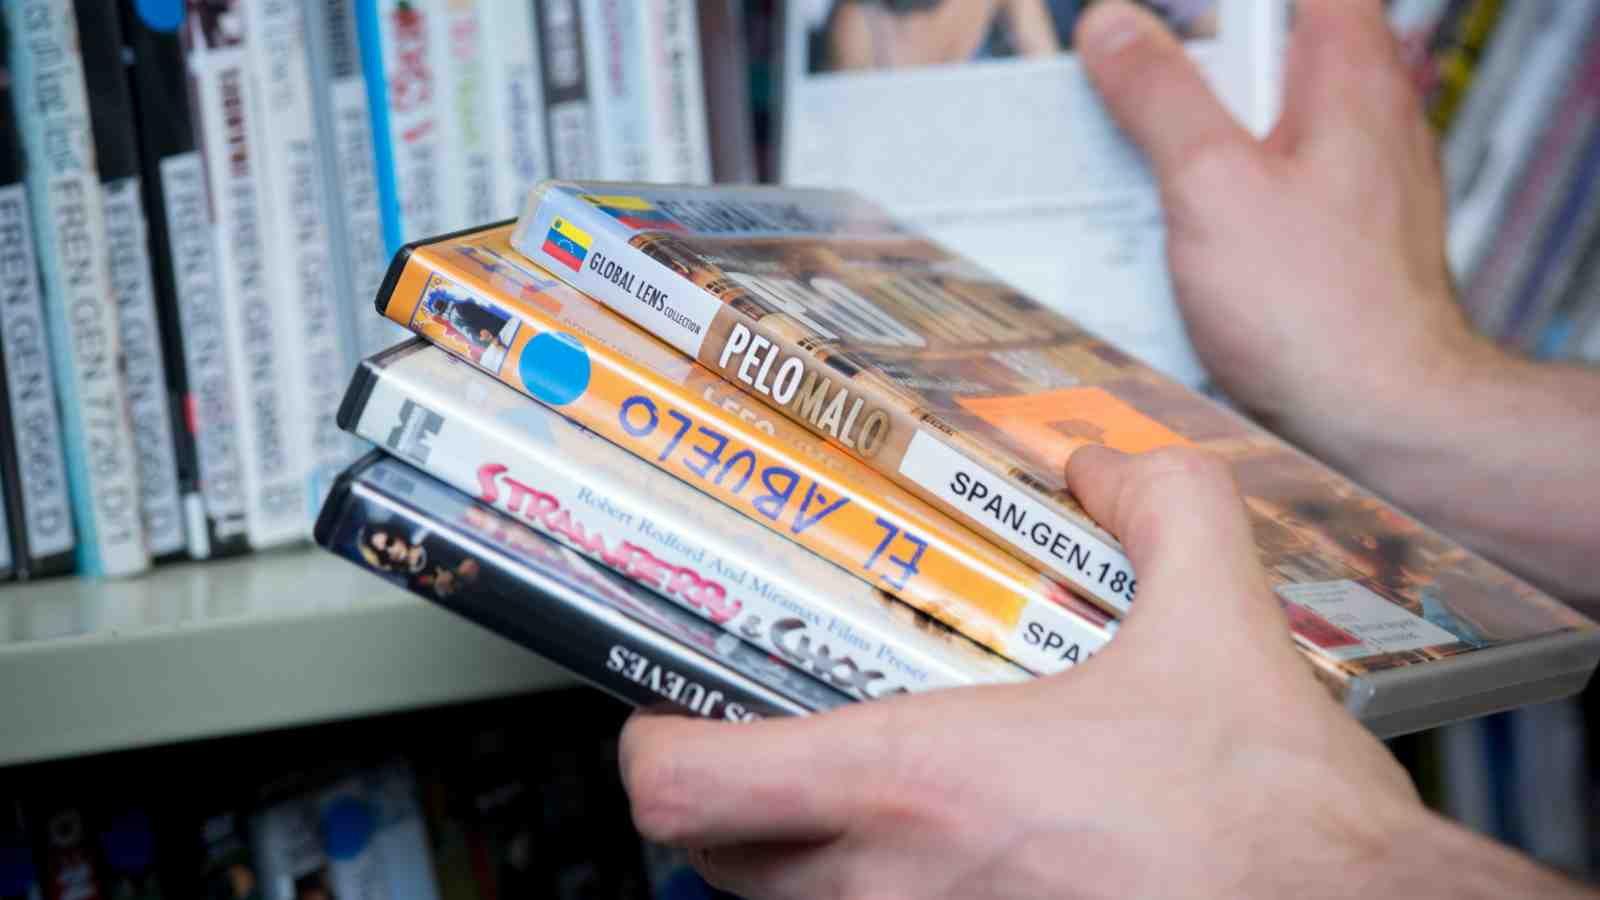 Te Waharoa library – a hand holds multiple dvd's in different languages.